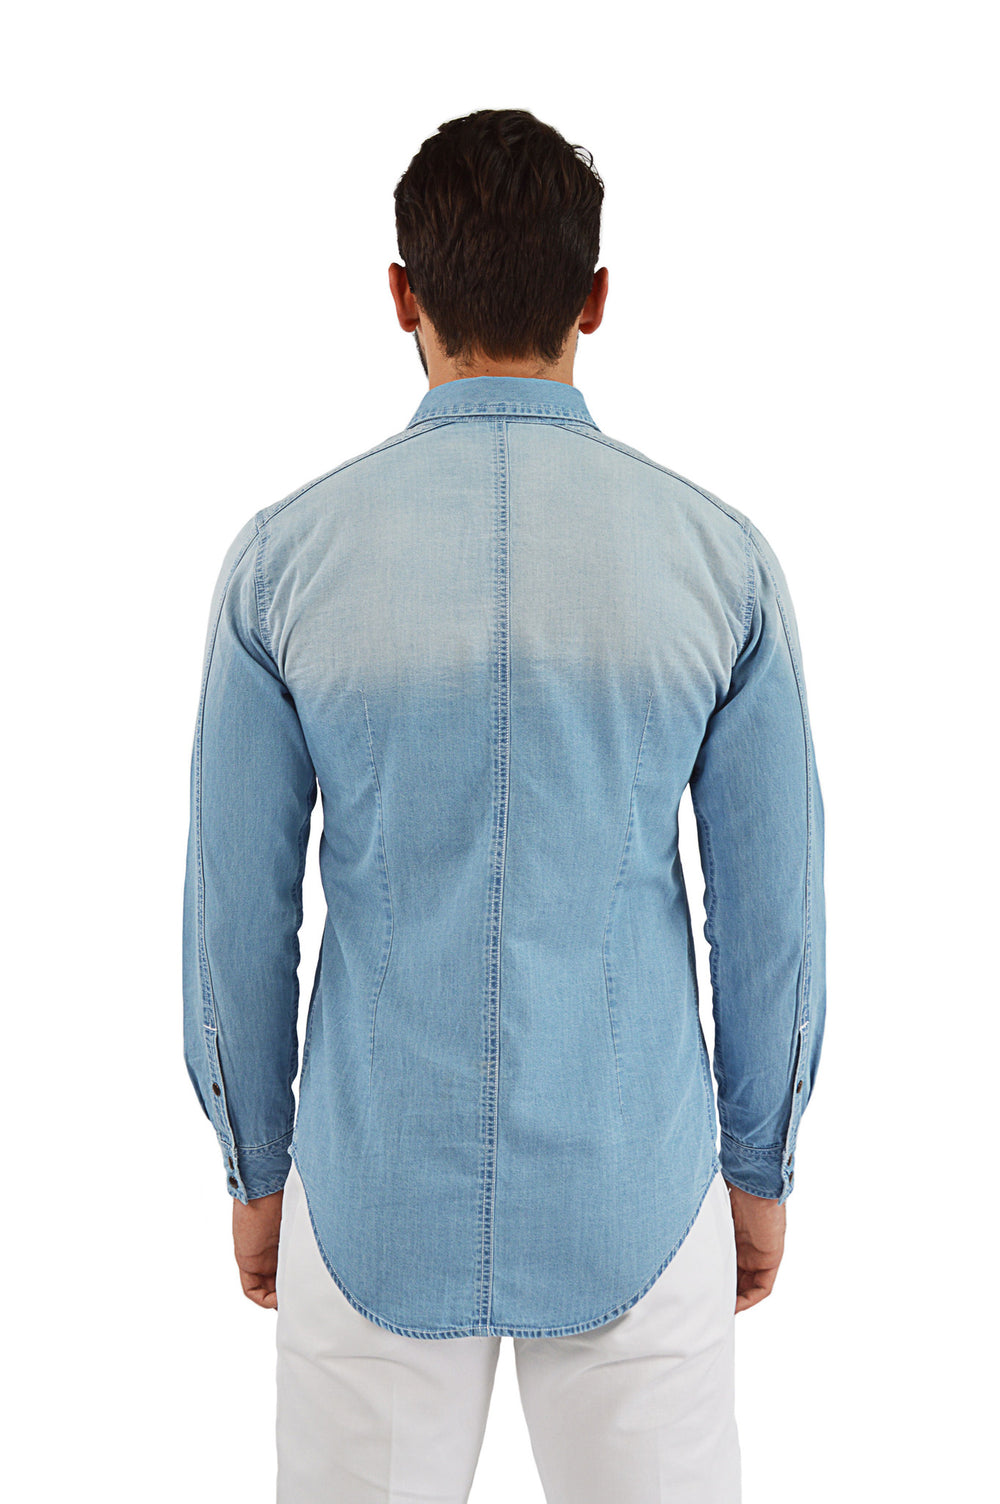 Back view light faded chambray shirt